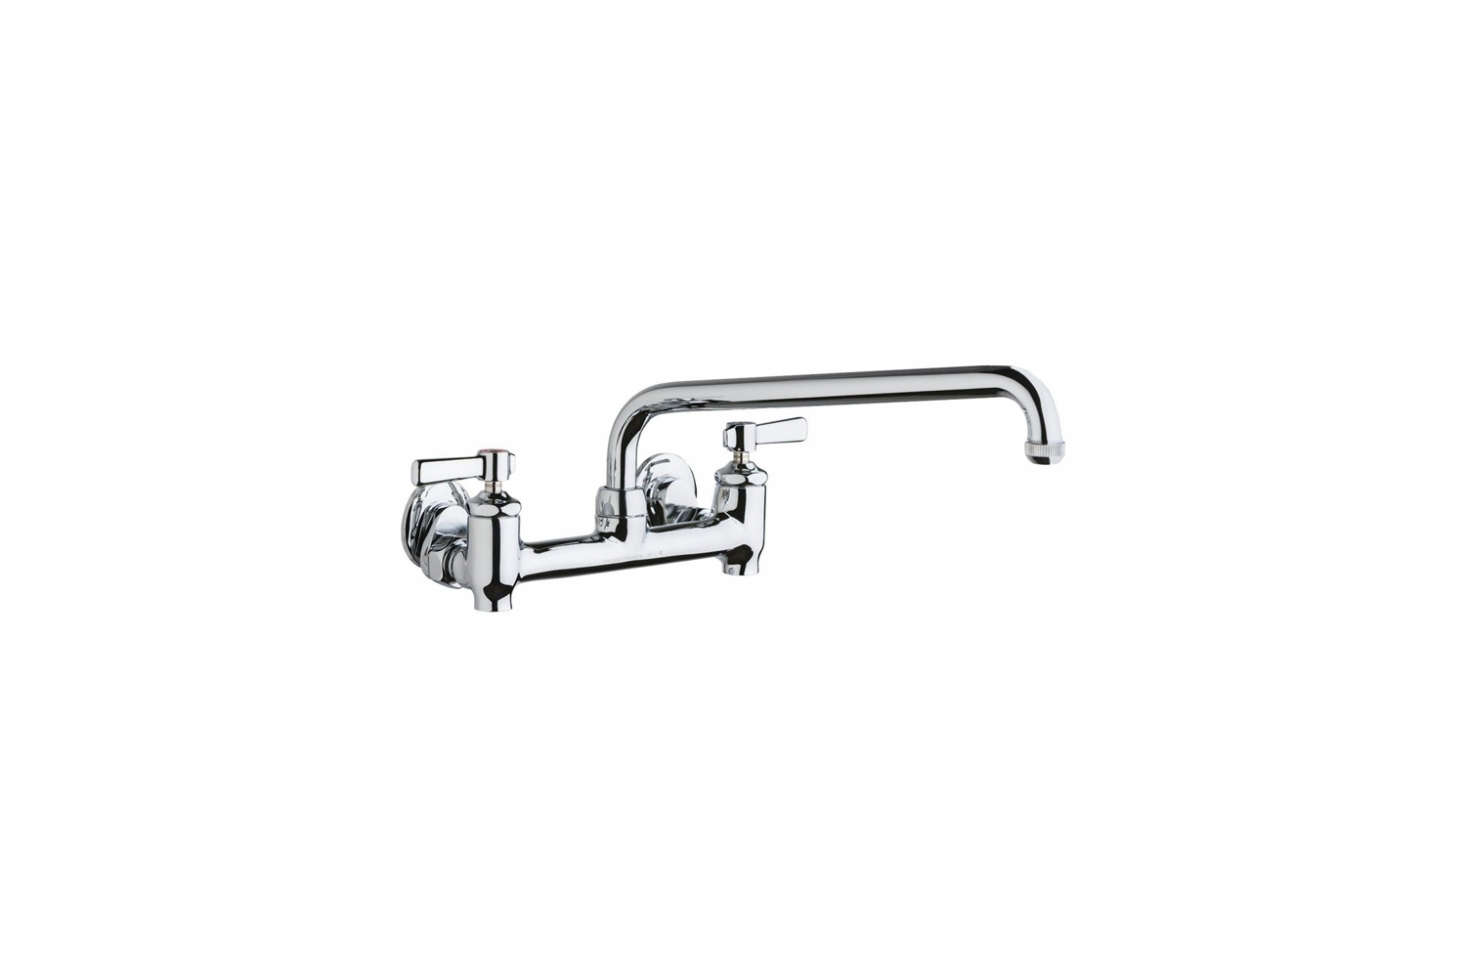 The Chicago Faucets Universal Hot & Cold Water Sink Faucet is $246.62 at eFaucets.